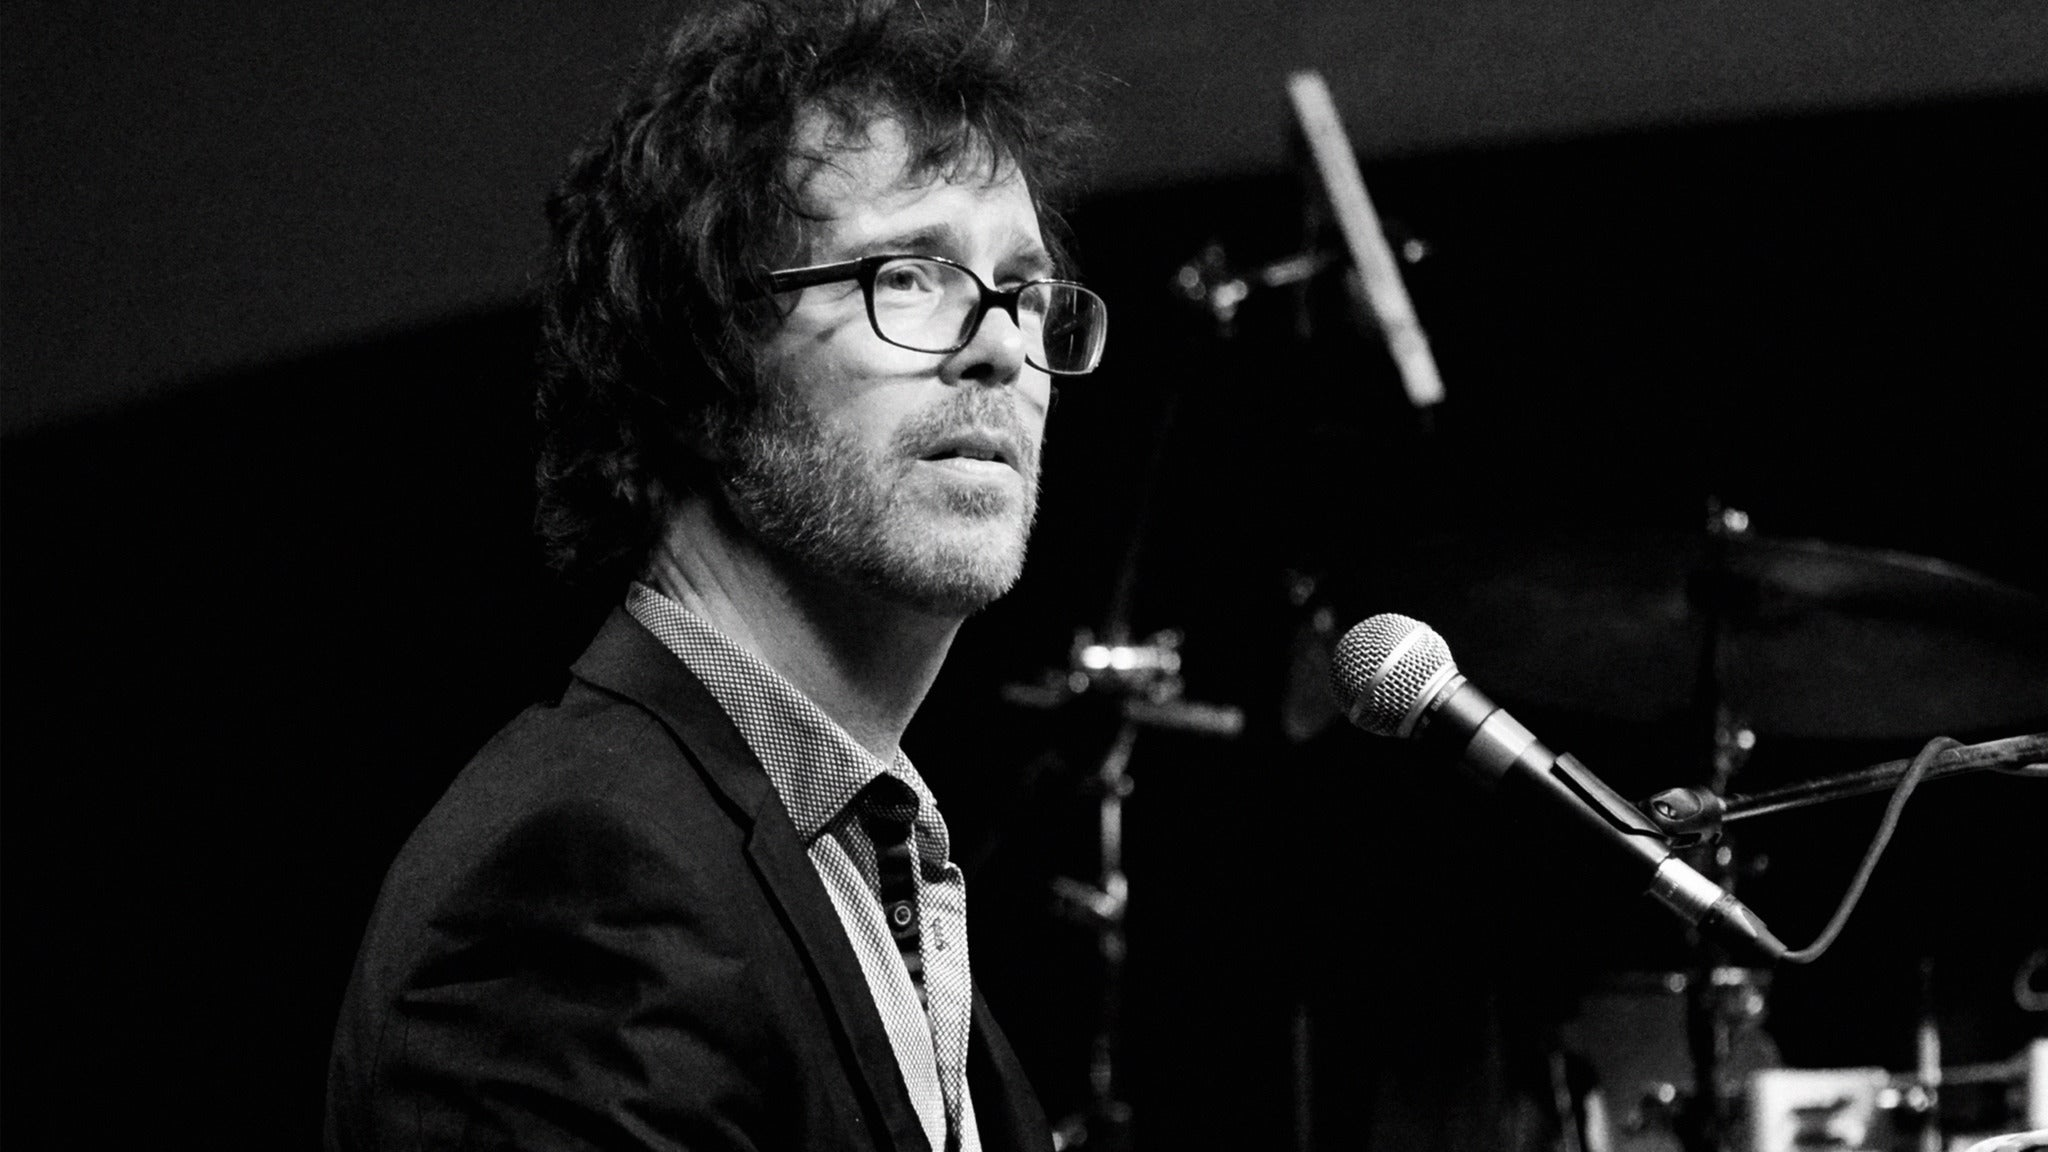 Ben Folds at Adler Theatre